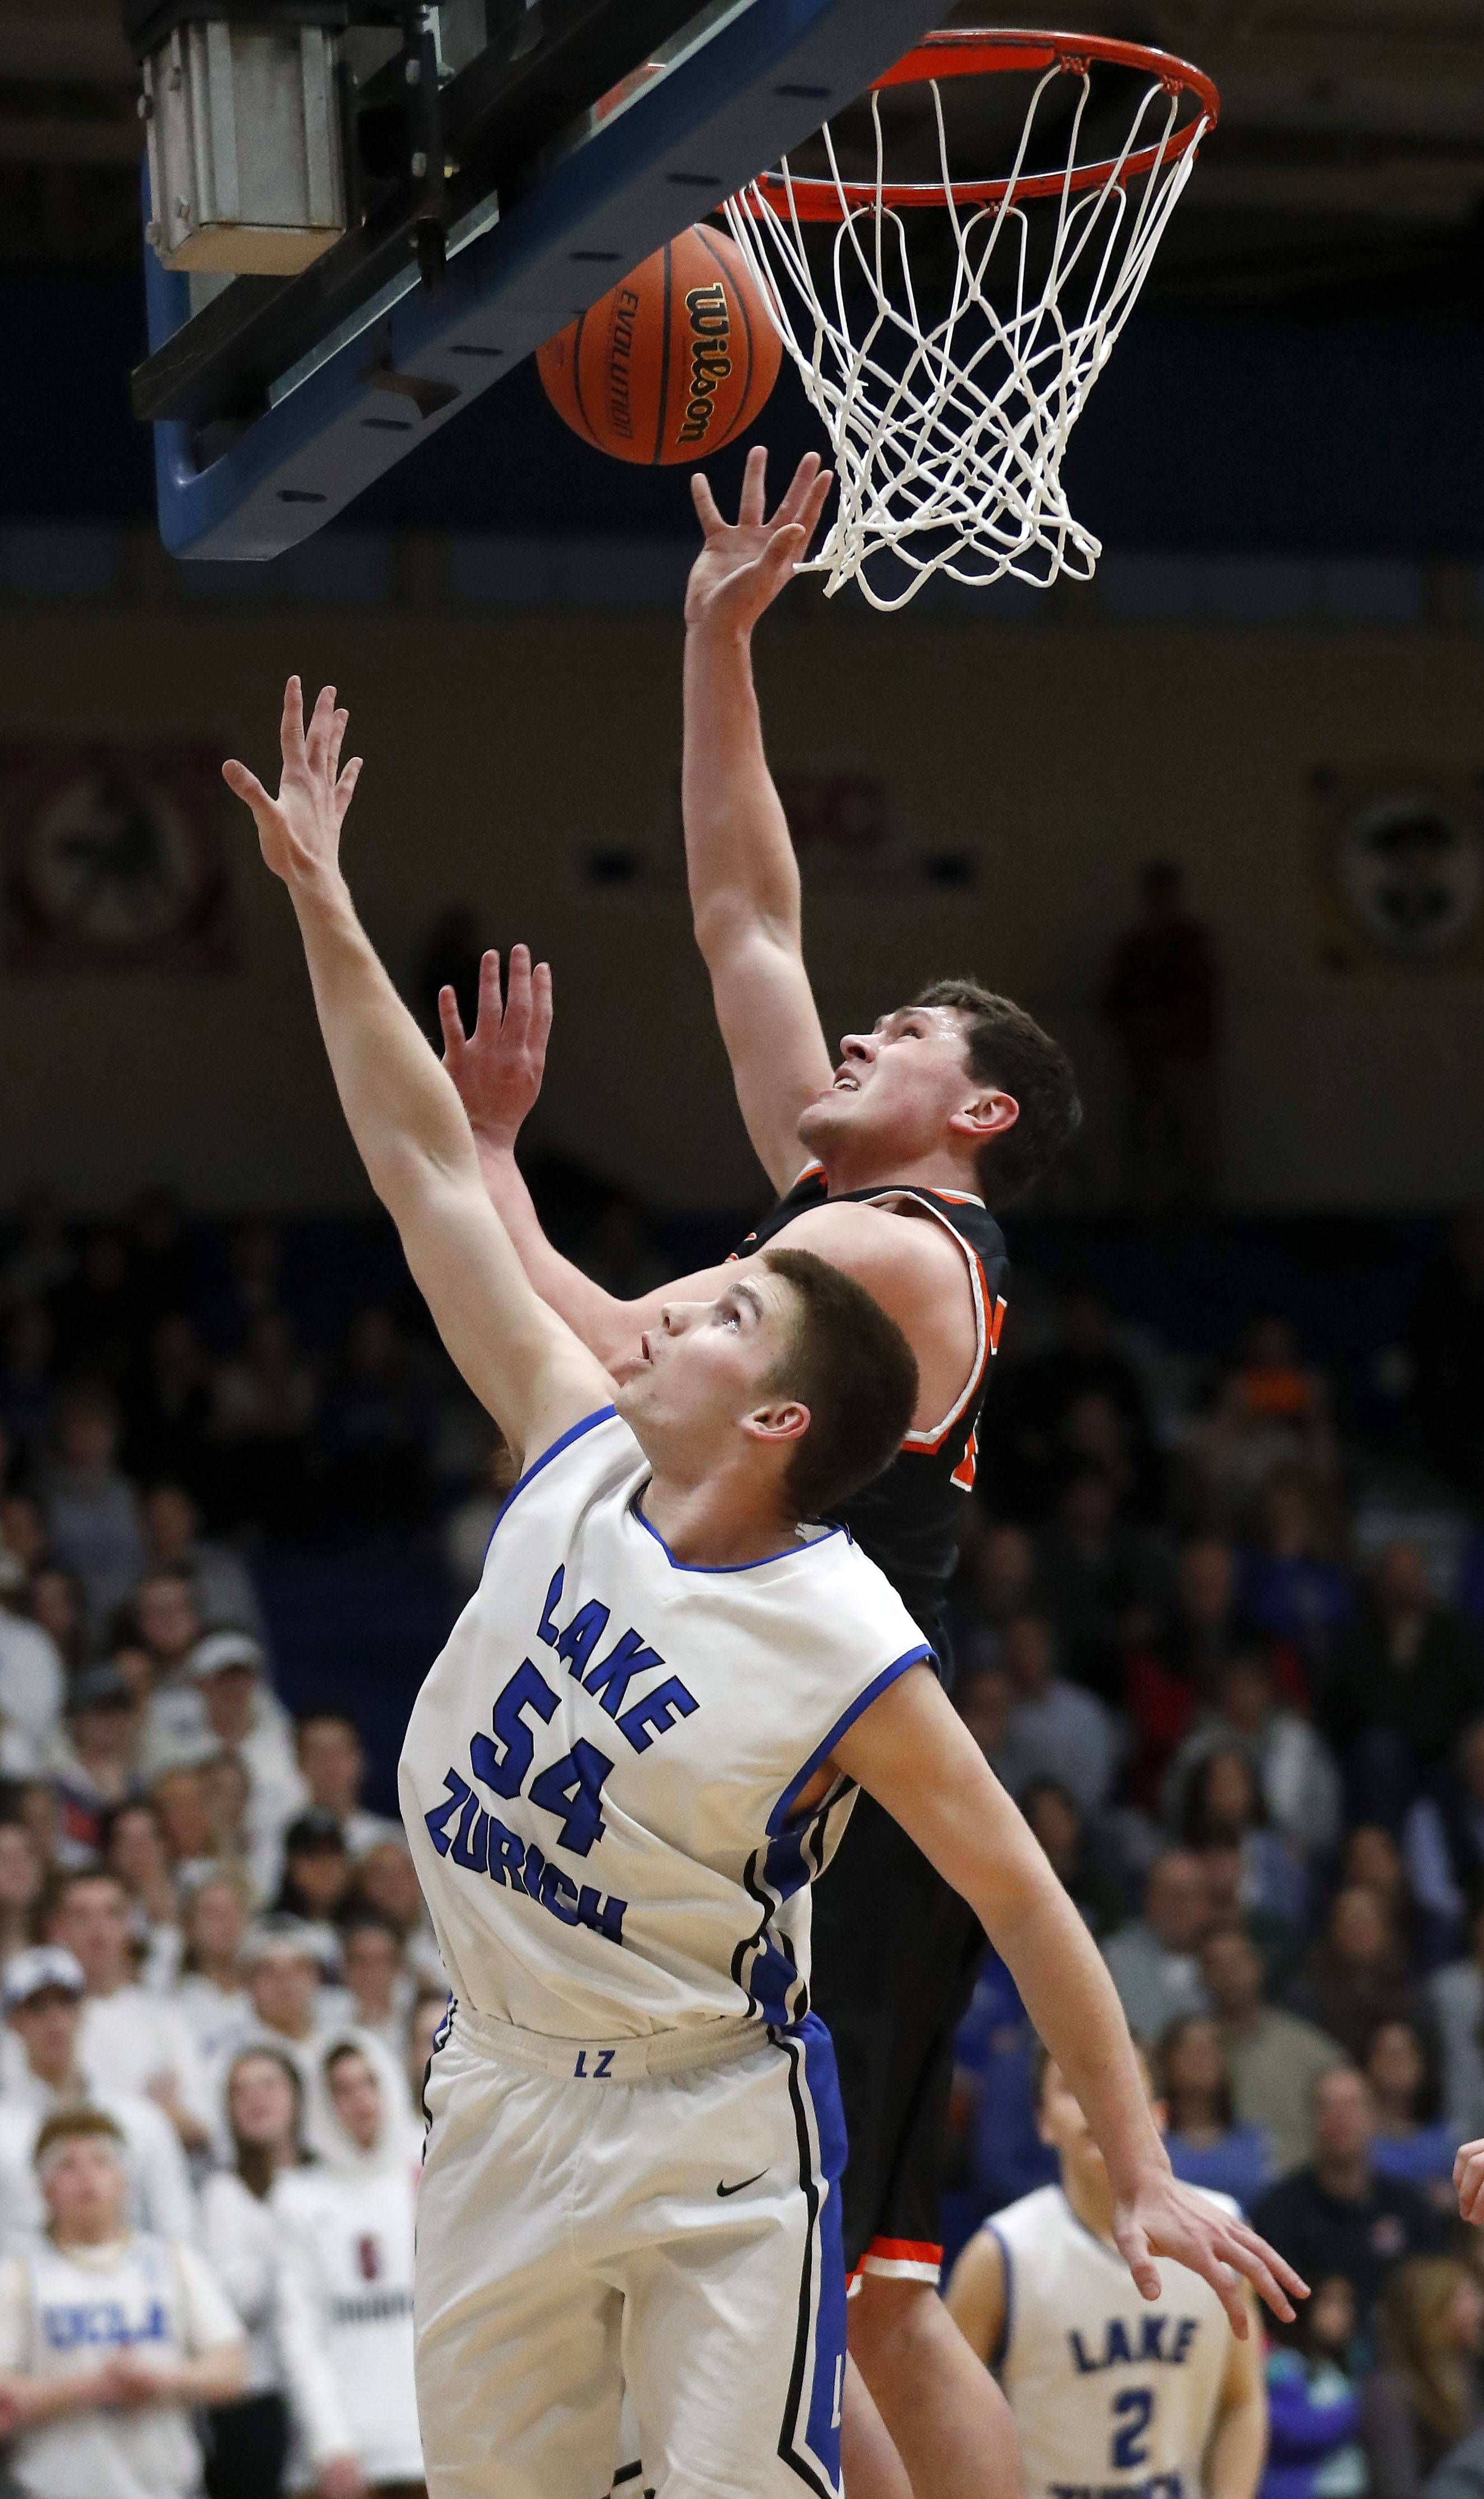 Libertyville's Brendan Cook shoots over Lake Zurich's Peter DiCerbo (54) during the Class 4A sectional semifinal at Lake Zurich High School on Tuesday.